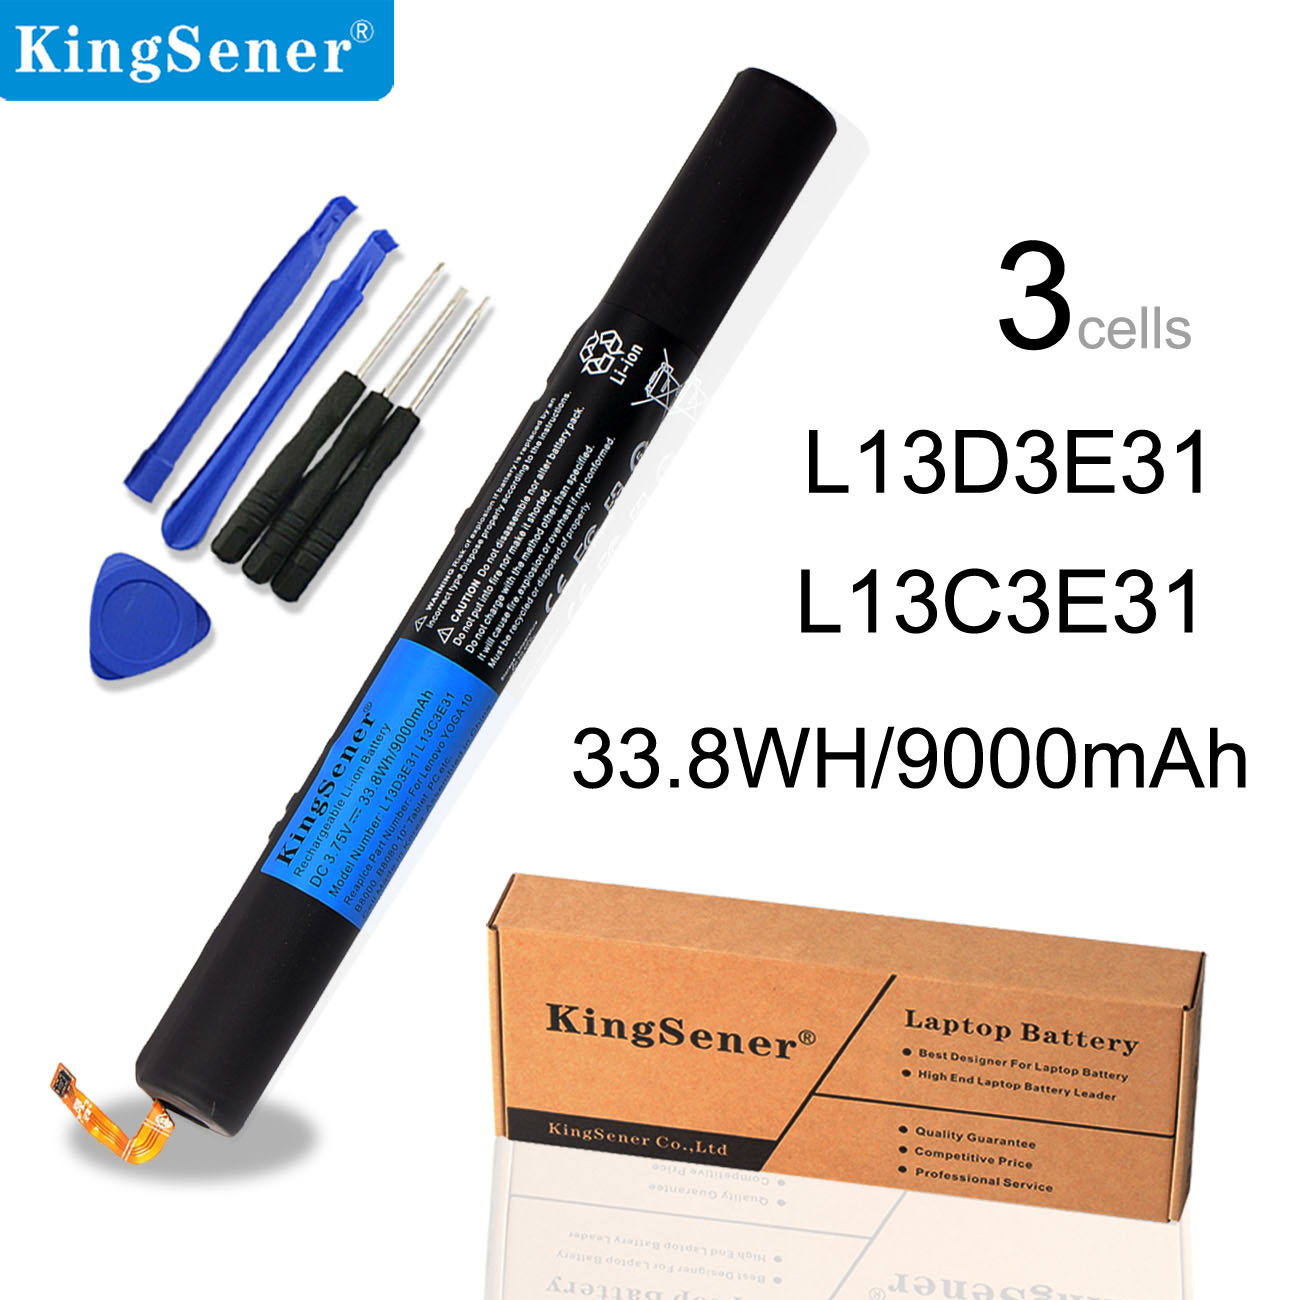 KingSener L13D3E31 <font><b>Tablet</b></font> Batterie für <font><b>LENOVO</b></font> <font><b>YOGA</b></font> <font><b>10</b></font>